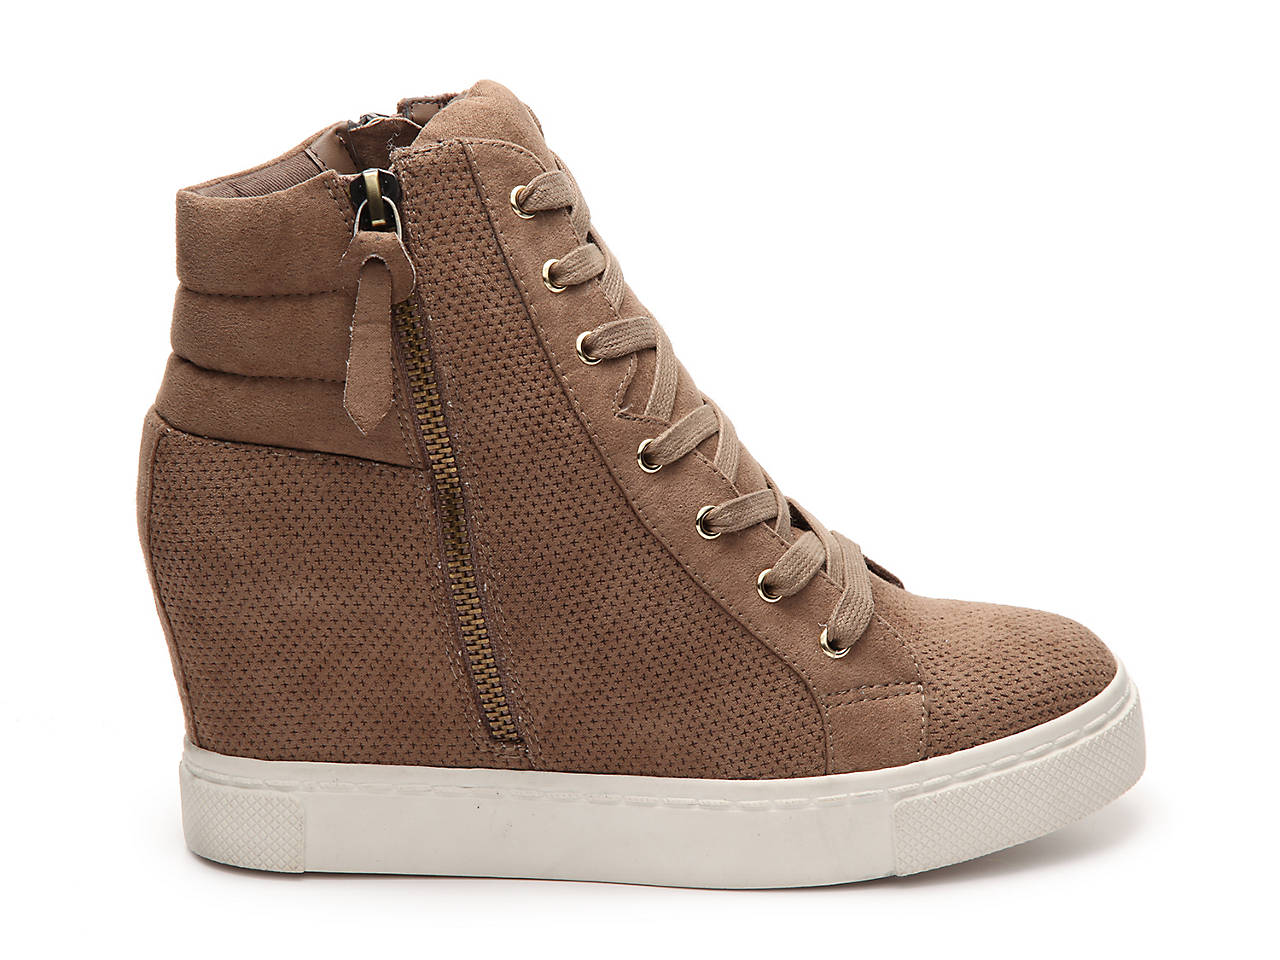 5e964e2e50b Steve Madden Lynn High-Top Wedge Sneaker Women s Shoes